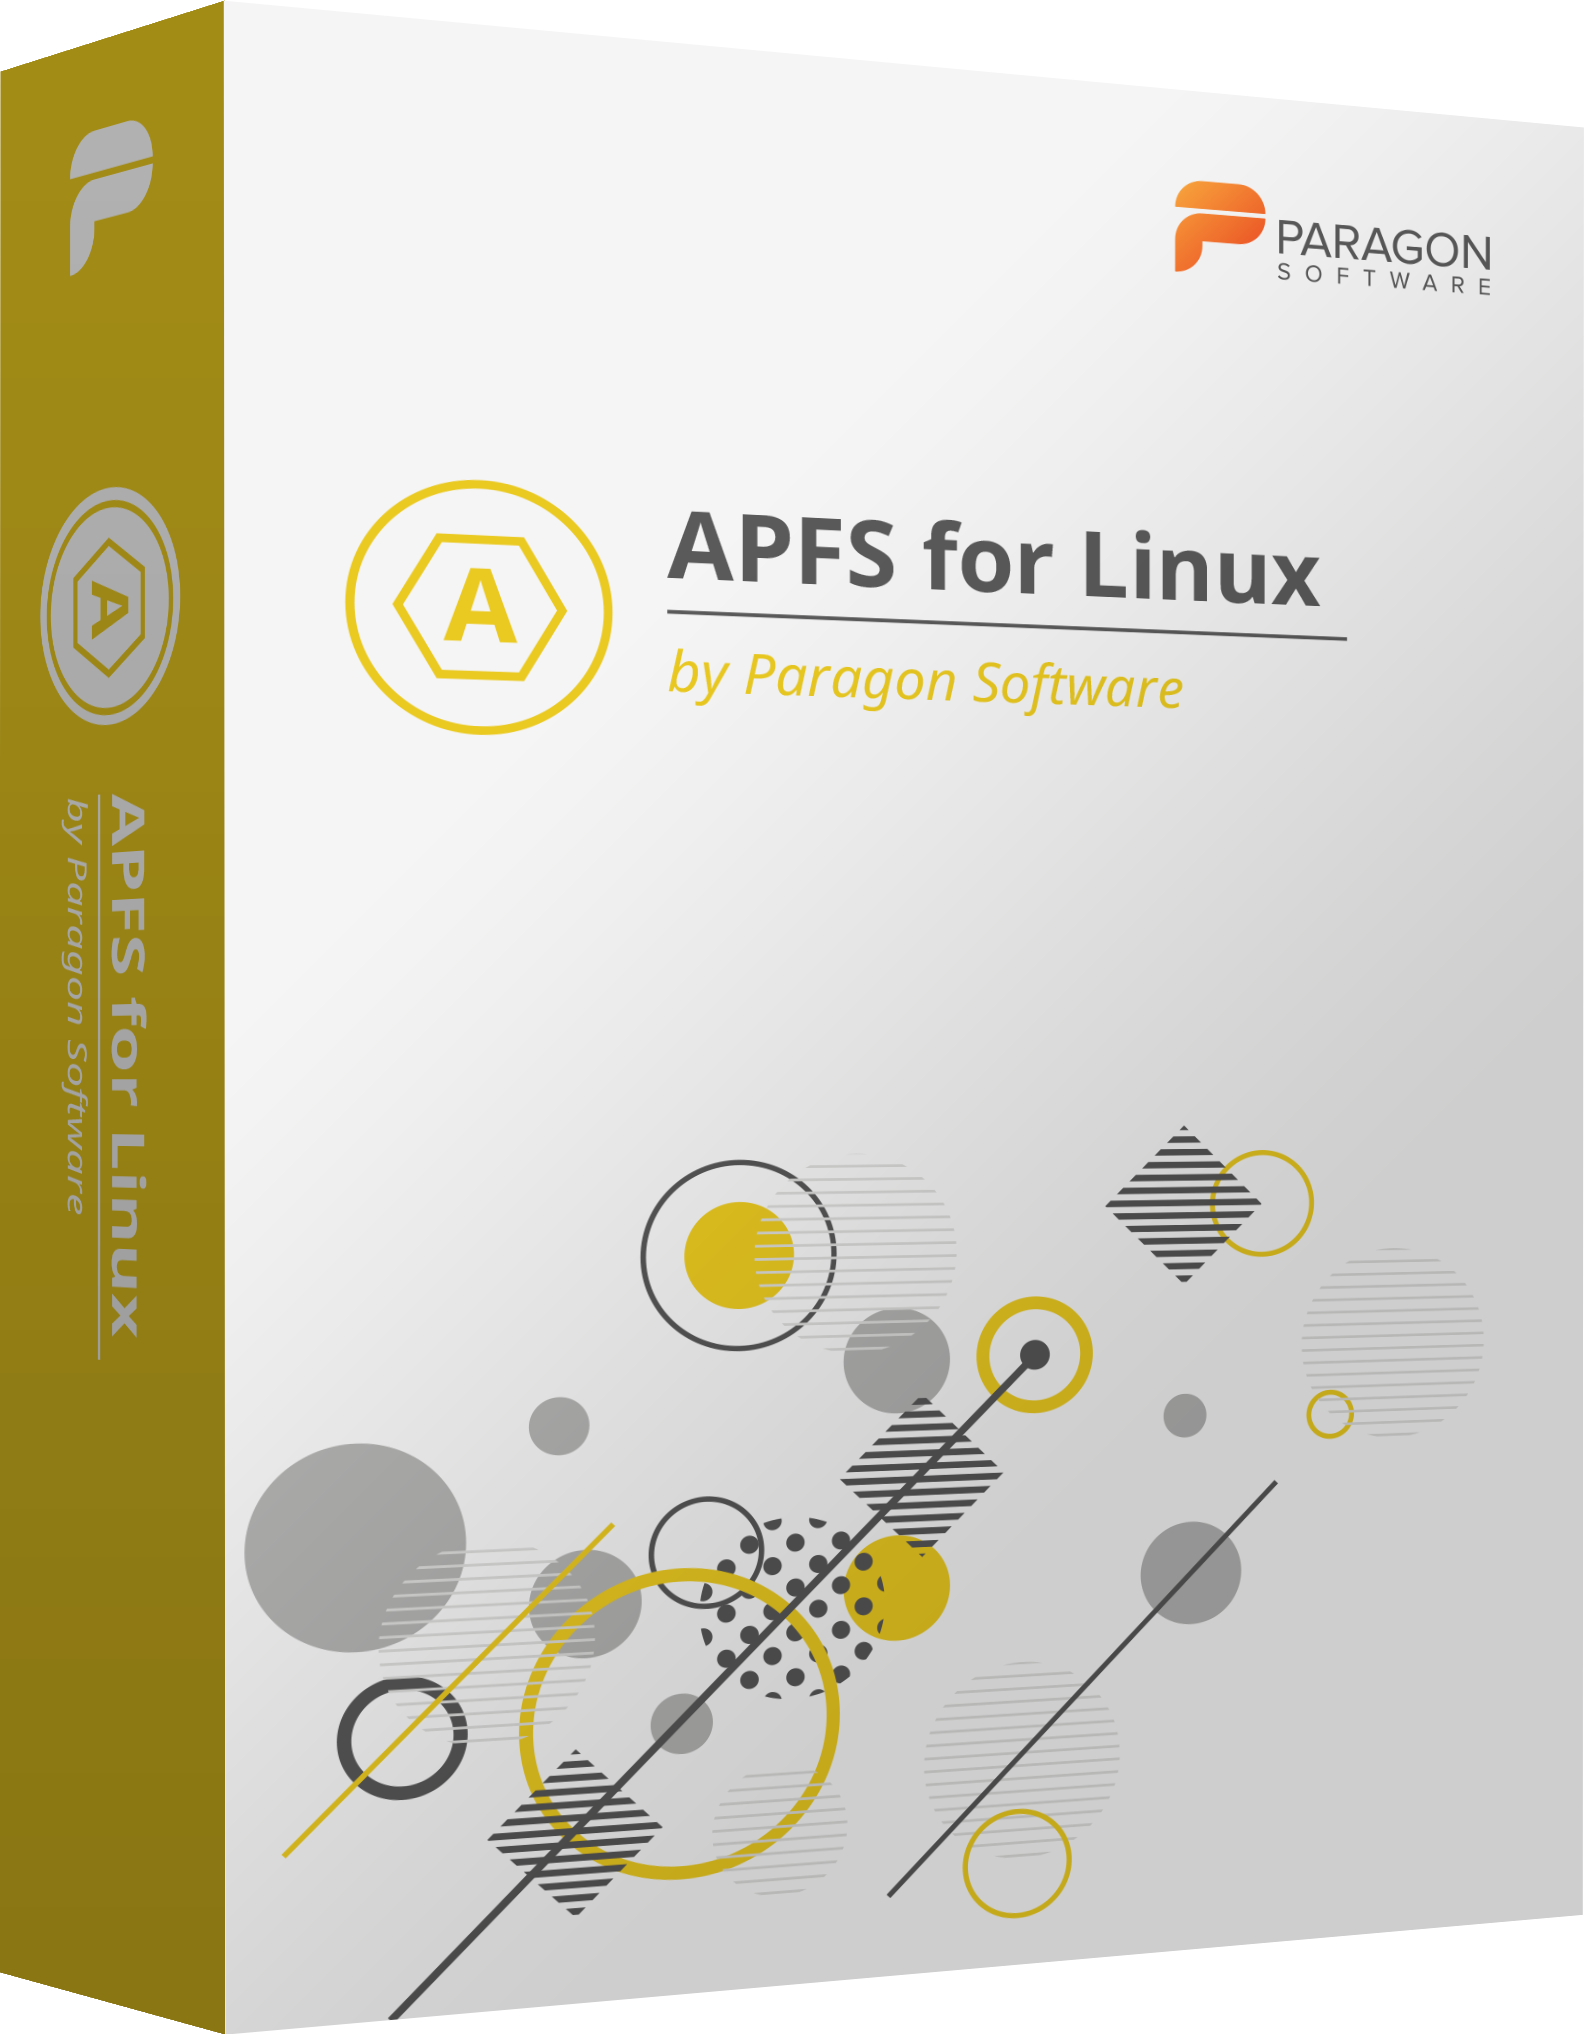 APFS_for_Linux_by_Paragon_Software